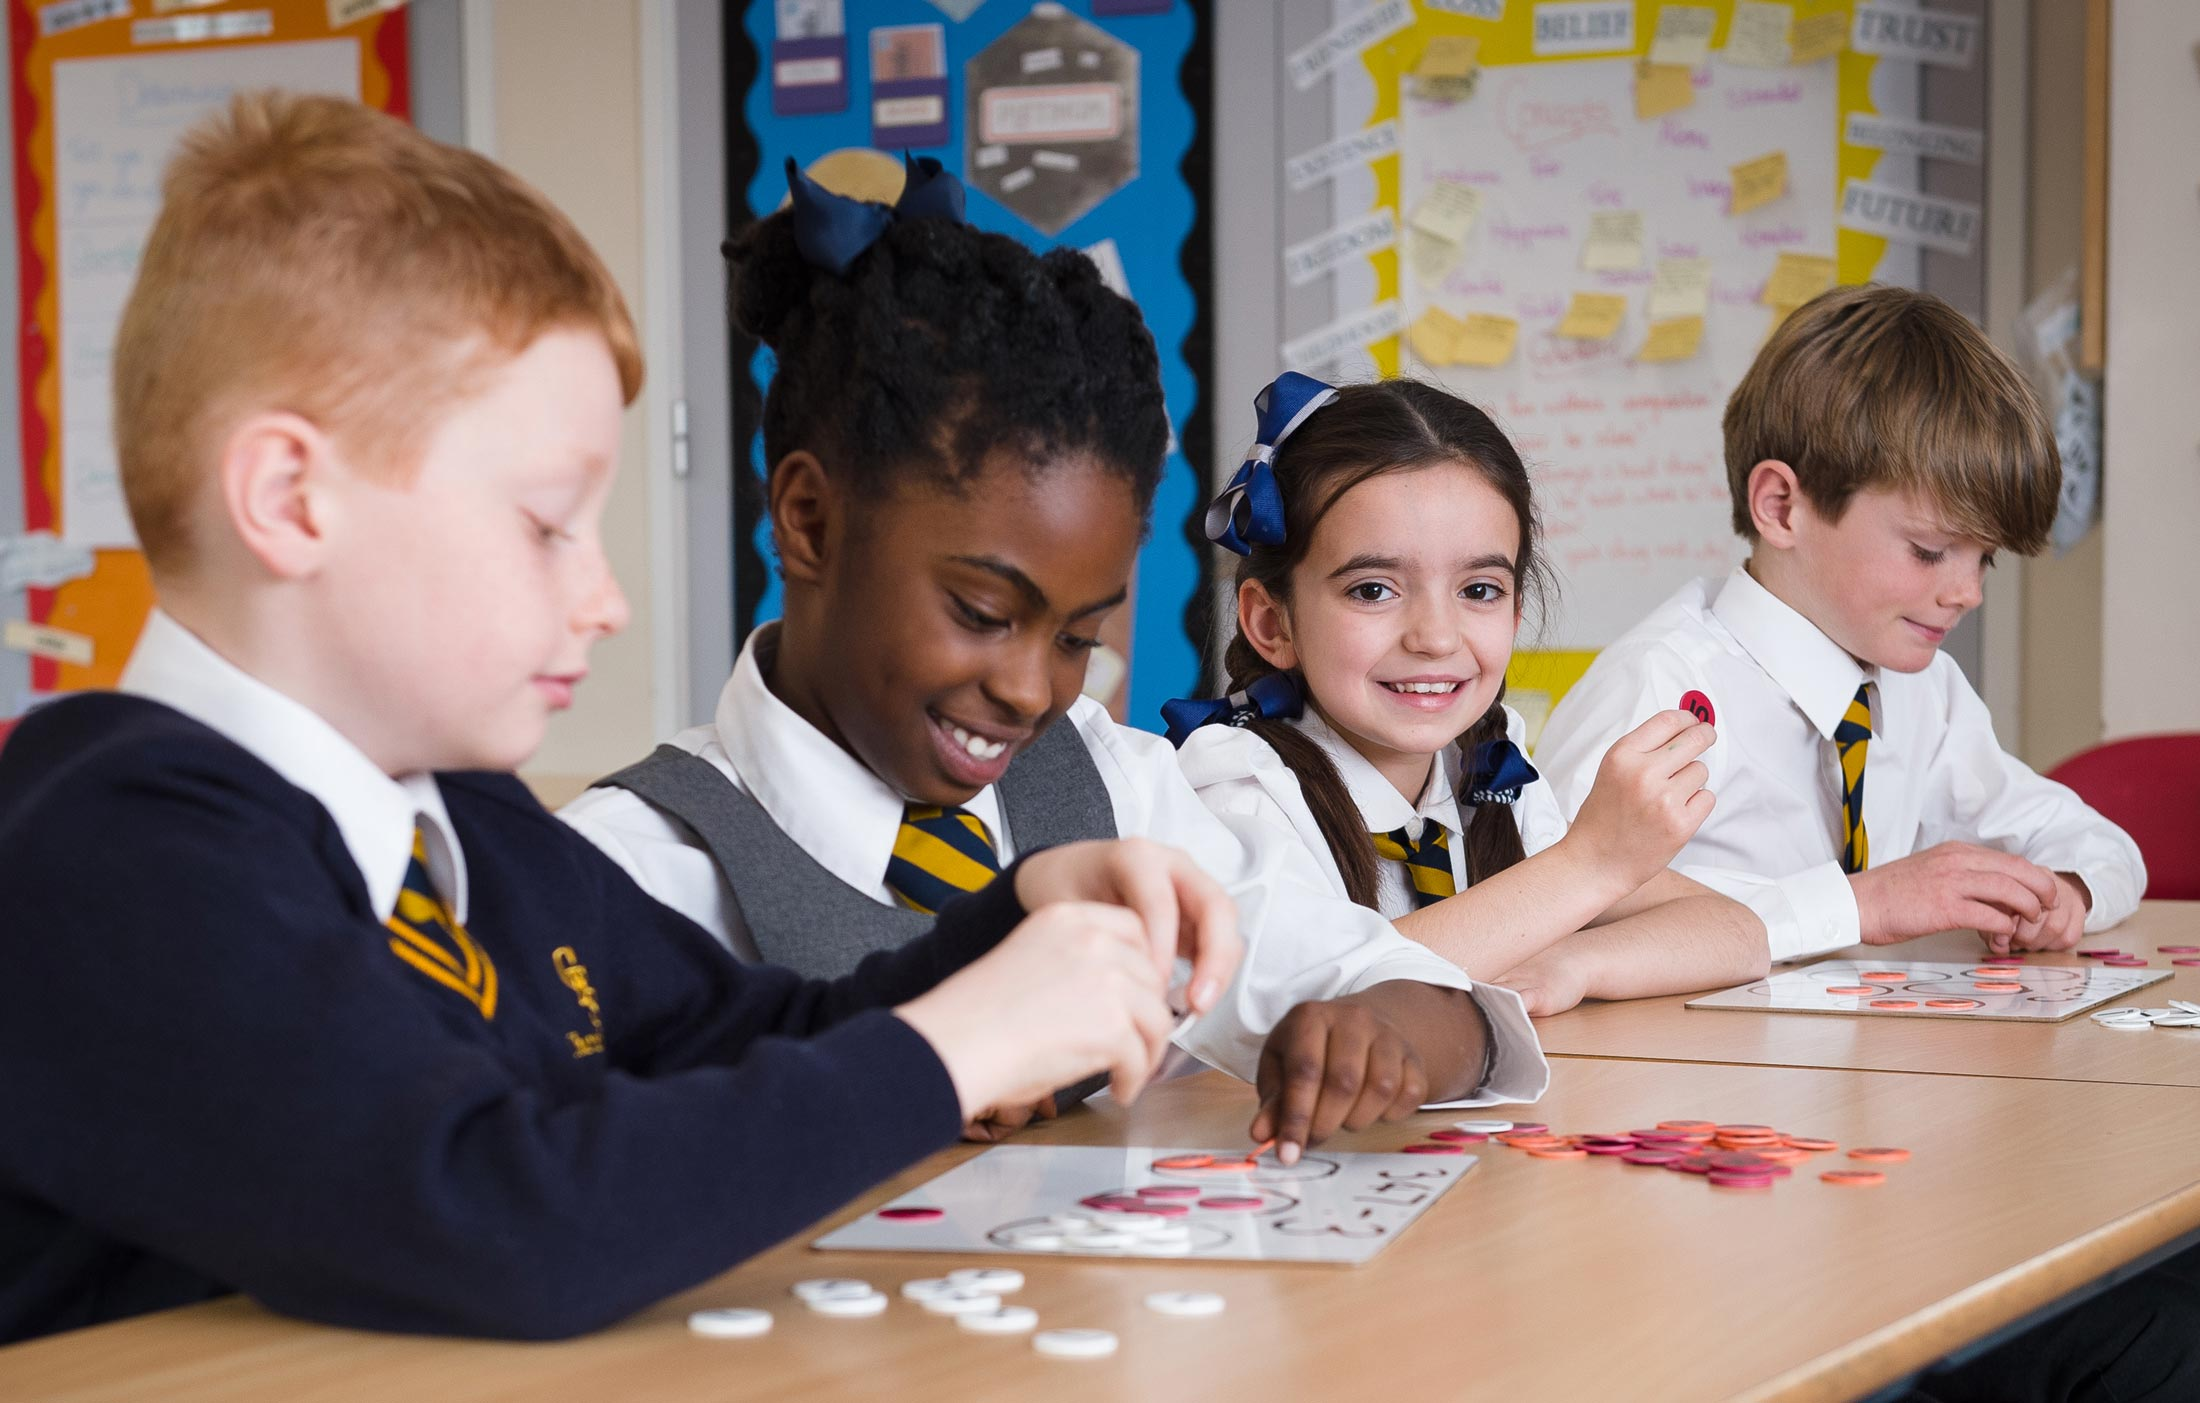 Four pupils using markers to learn maths